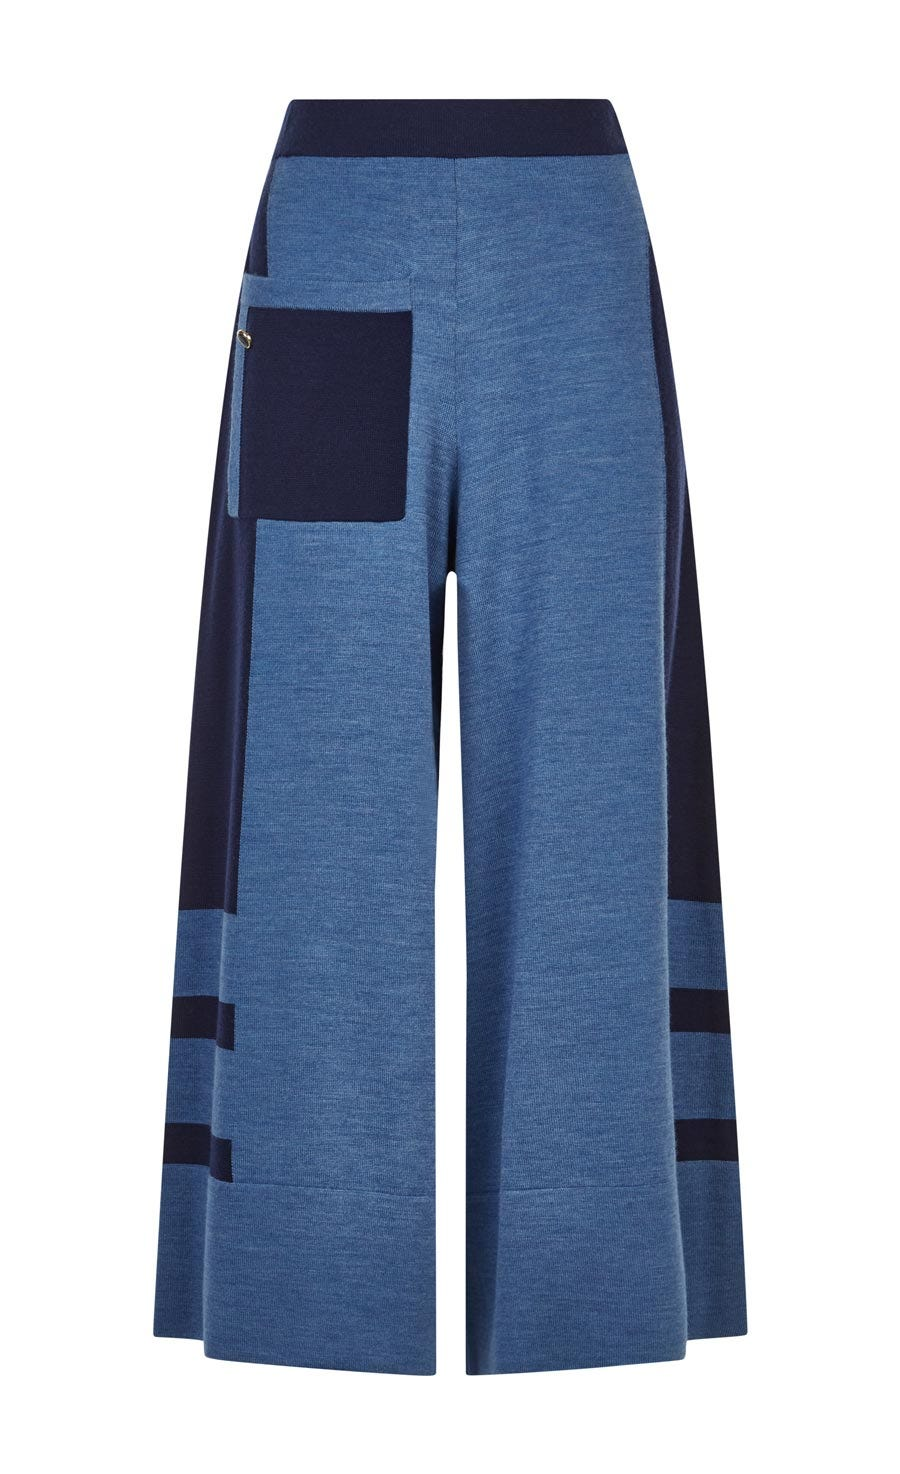 Aggie Knit Culottes